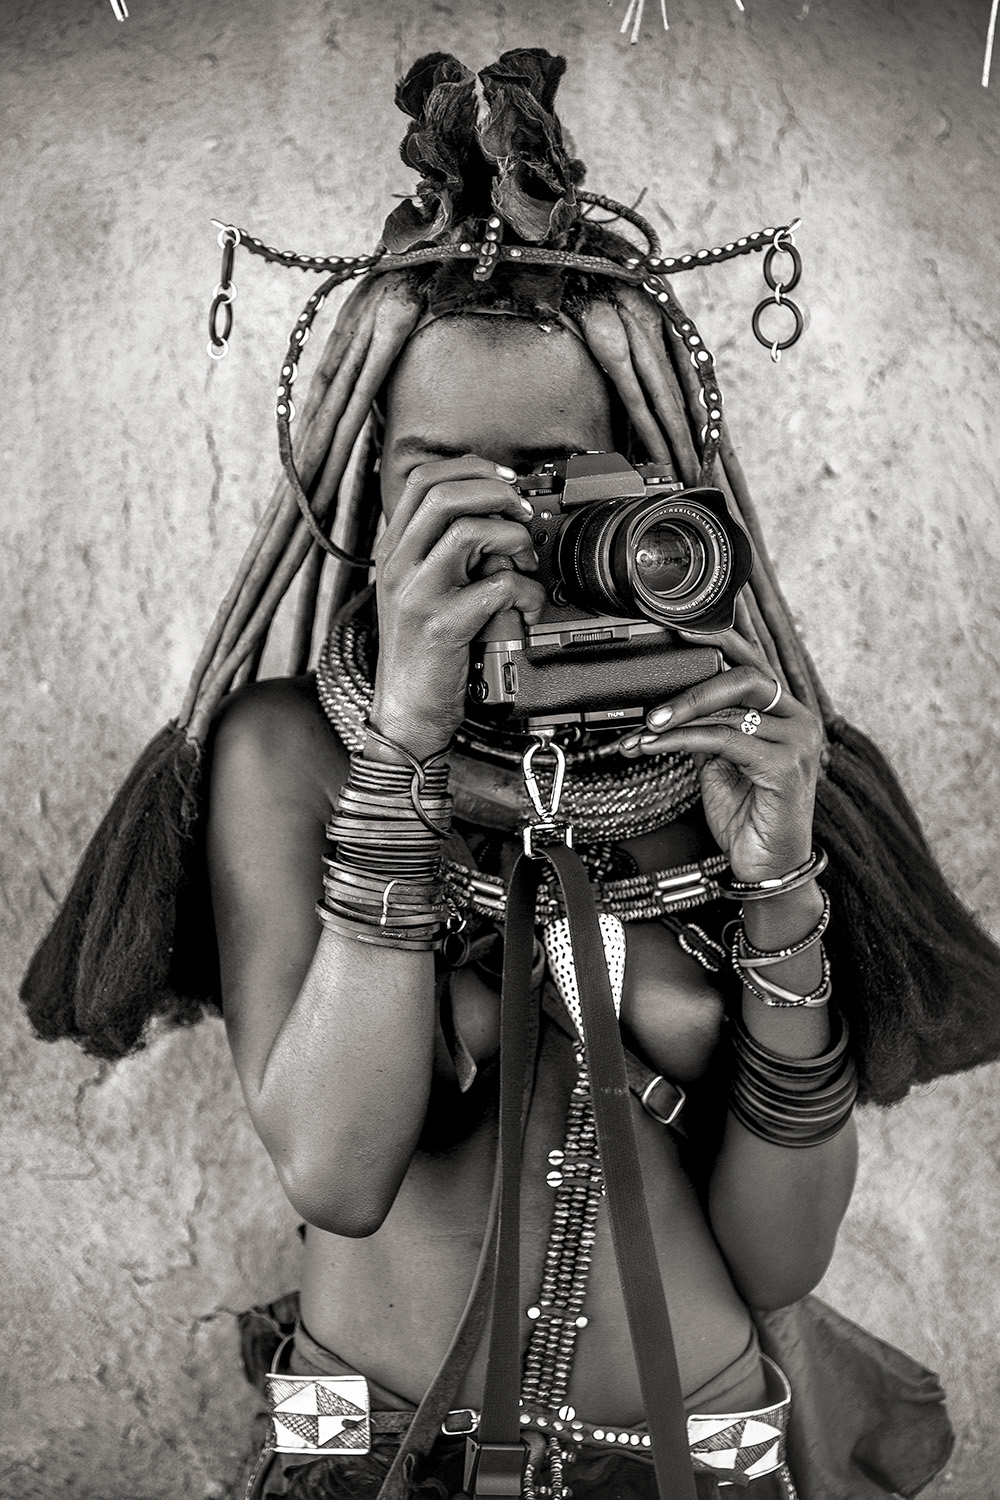 ig •••BW ••C Young Himba woman with My Camera 2_DSF0758-2.jpg